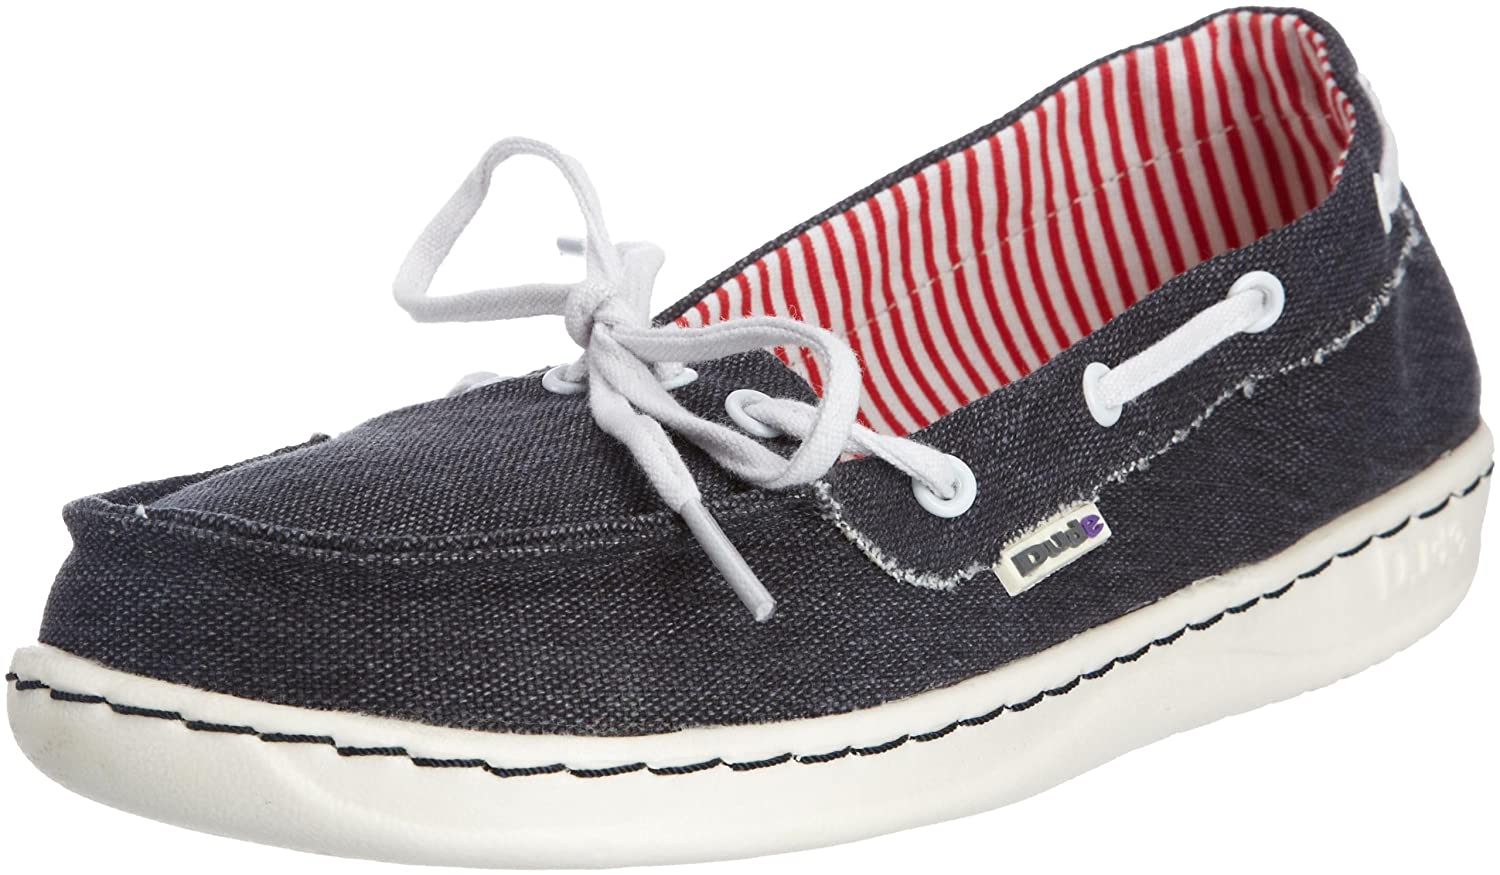 Dude Moka Ladies Schuhes Schuhes Ladies Navy (37) b1de0e